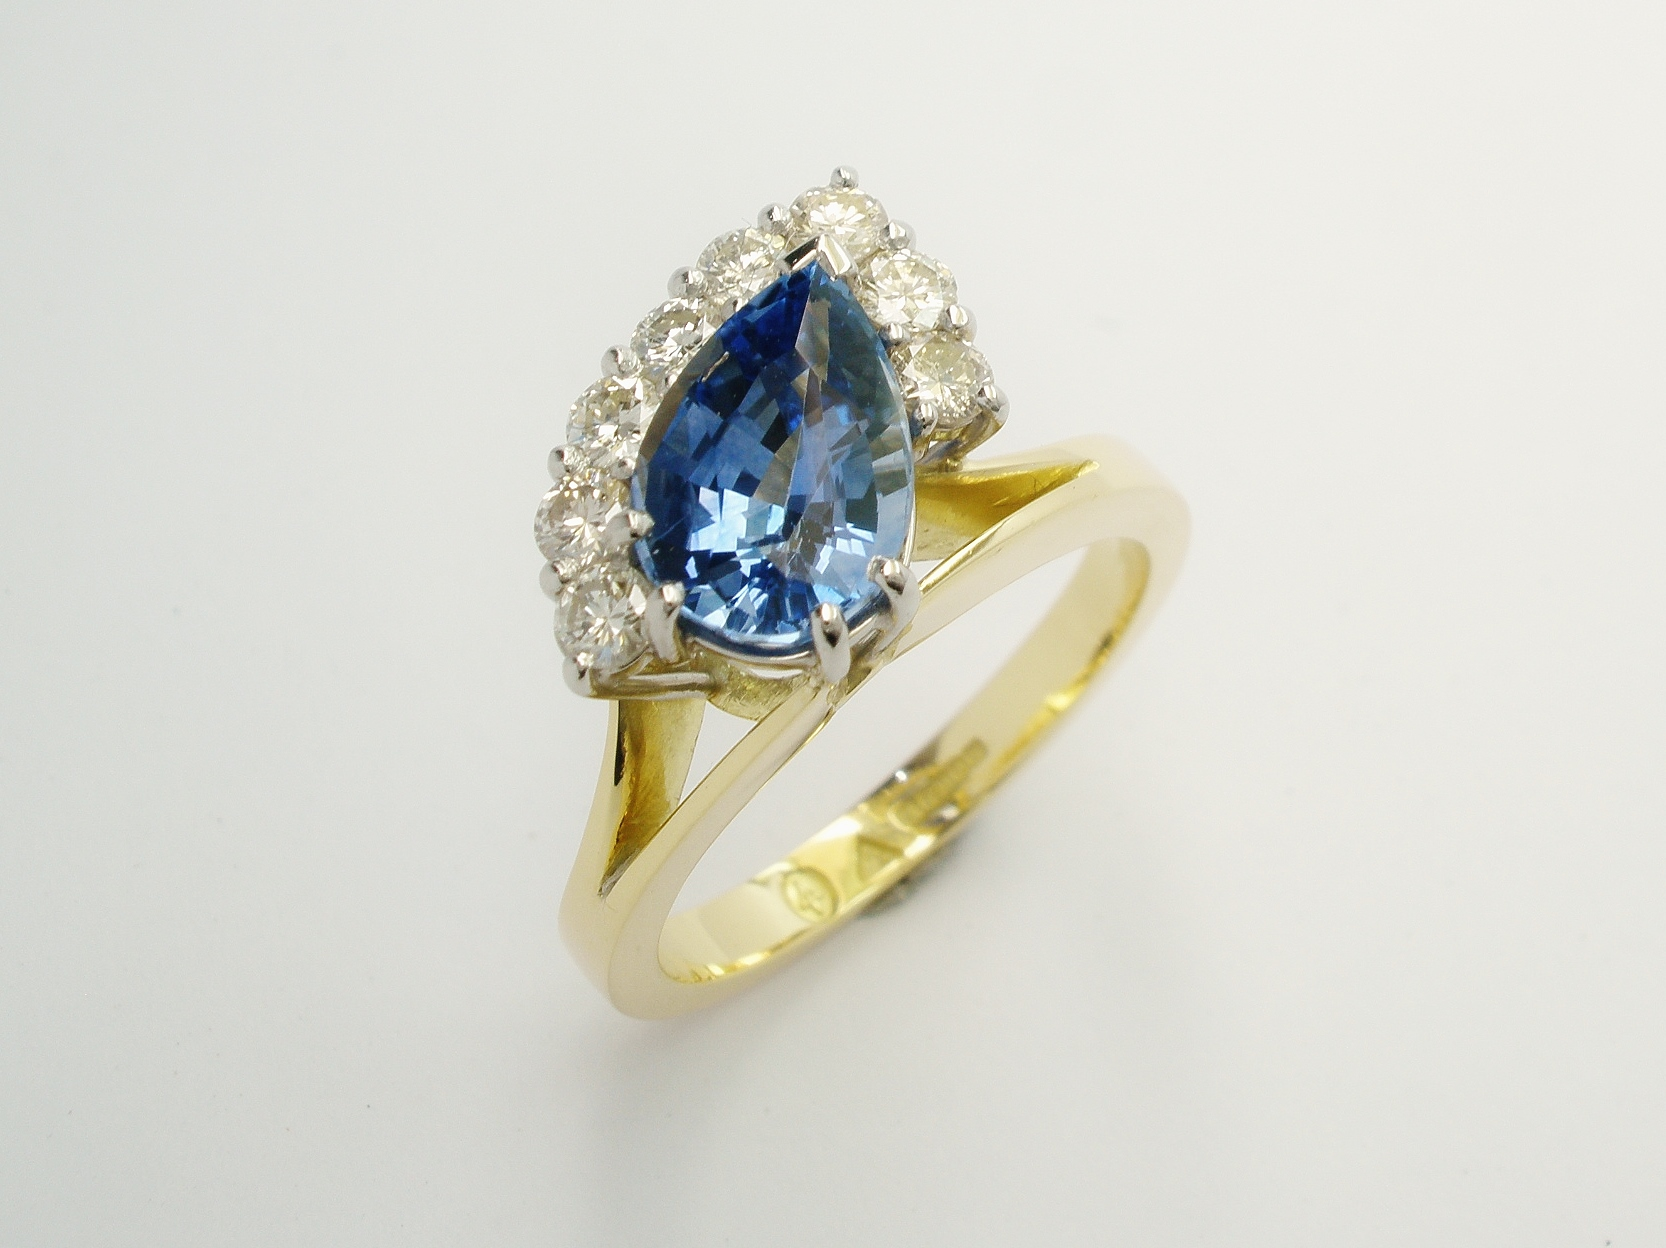 Pear shaped sapphire and round brilliant cut diamond part offset cluster ring mounted in 18ct. yellow gold and platinum.